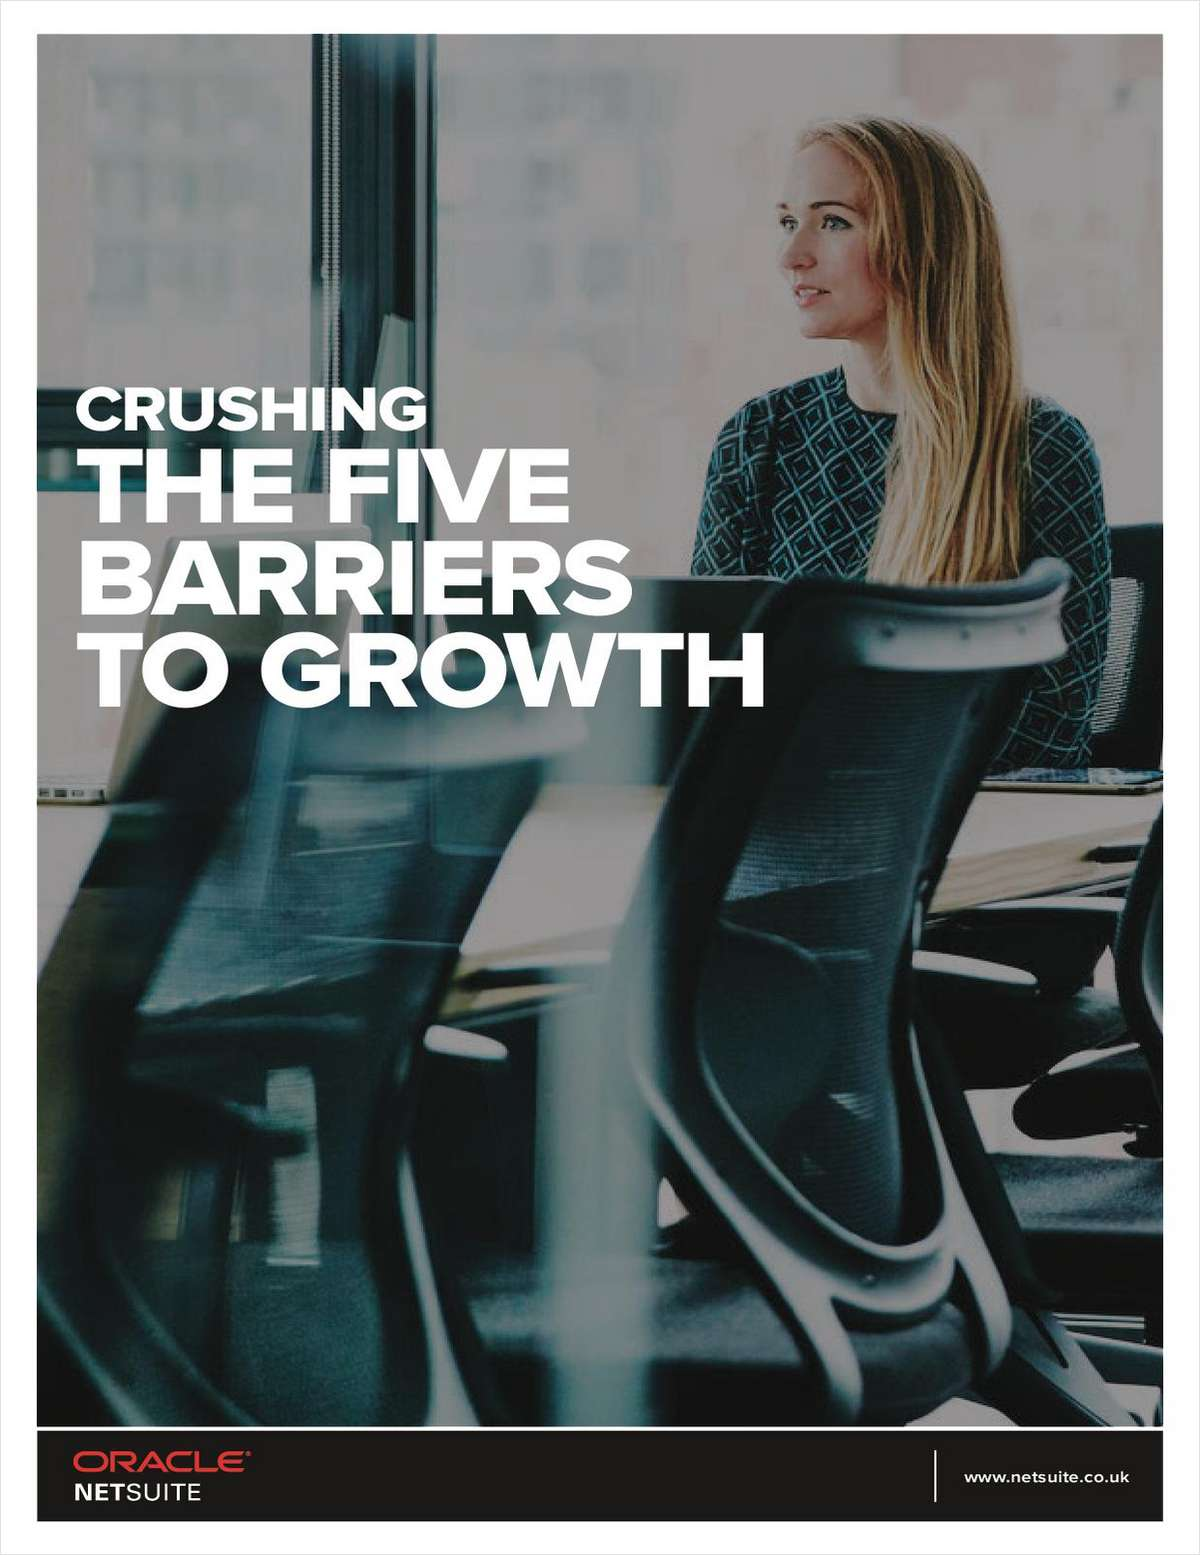 Crushing the Five Barriers to Growth